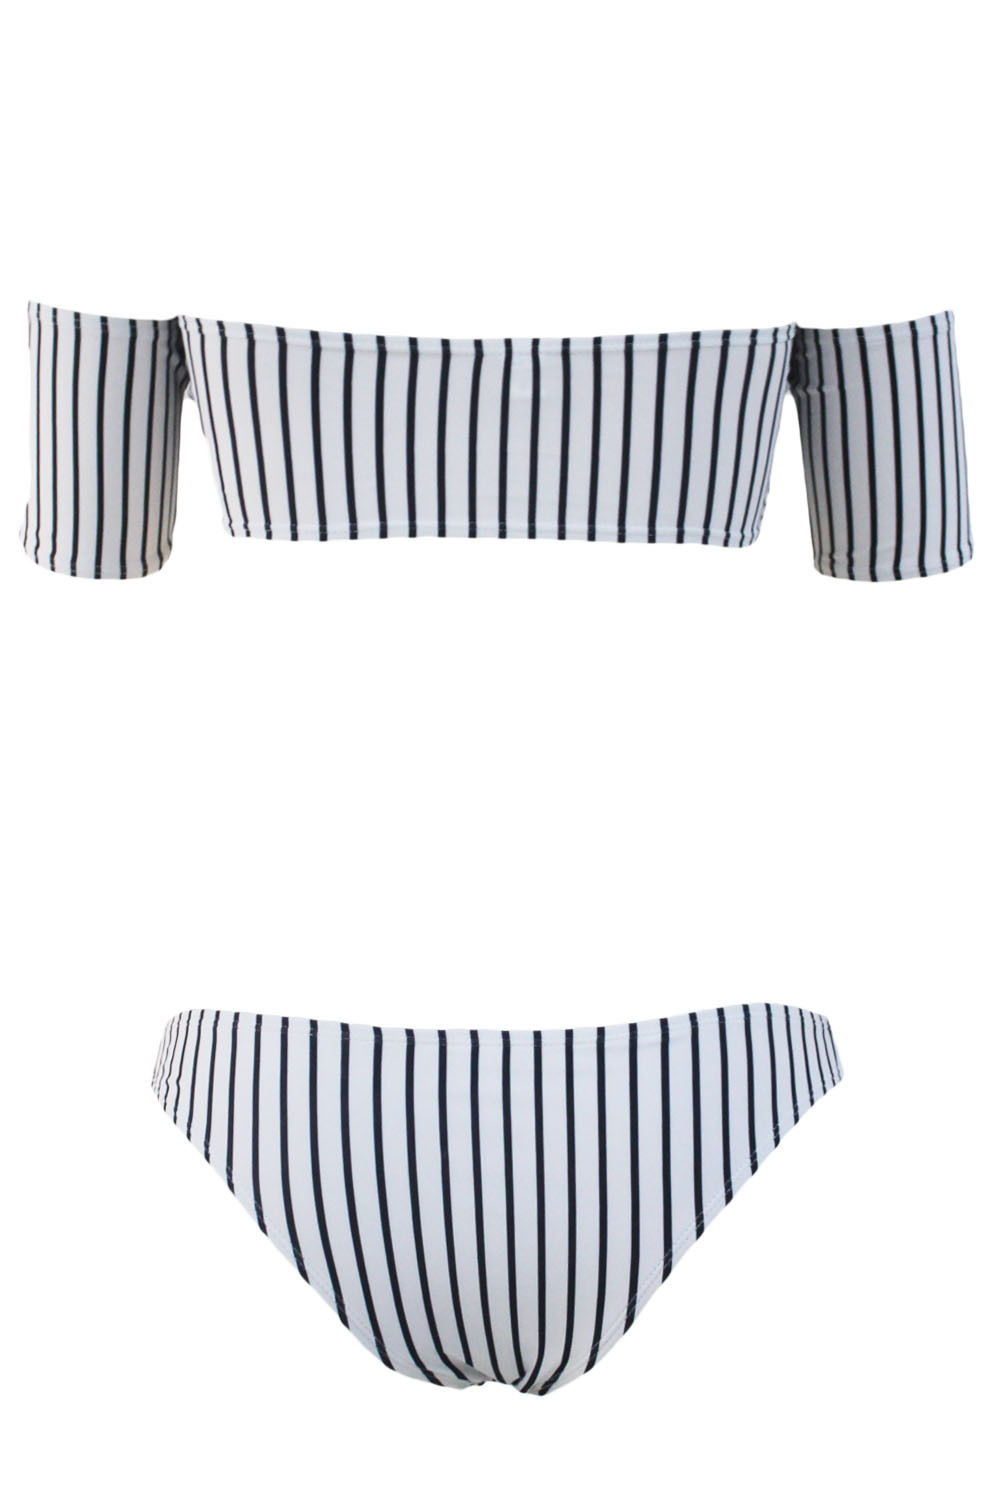 Striped Off Shoulder Bandeau Bikini With High Cut Bottoms 3